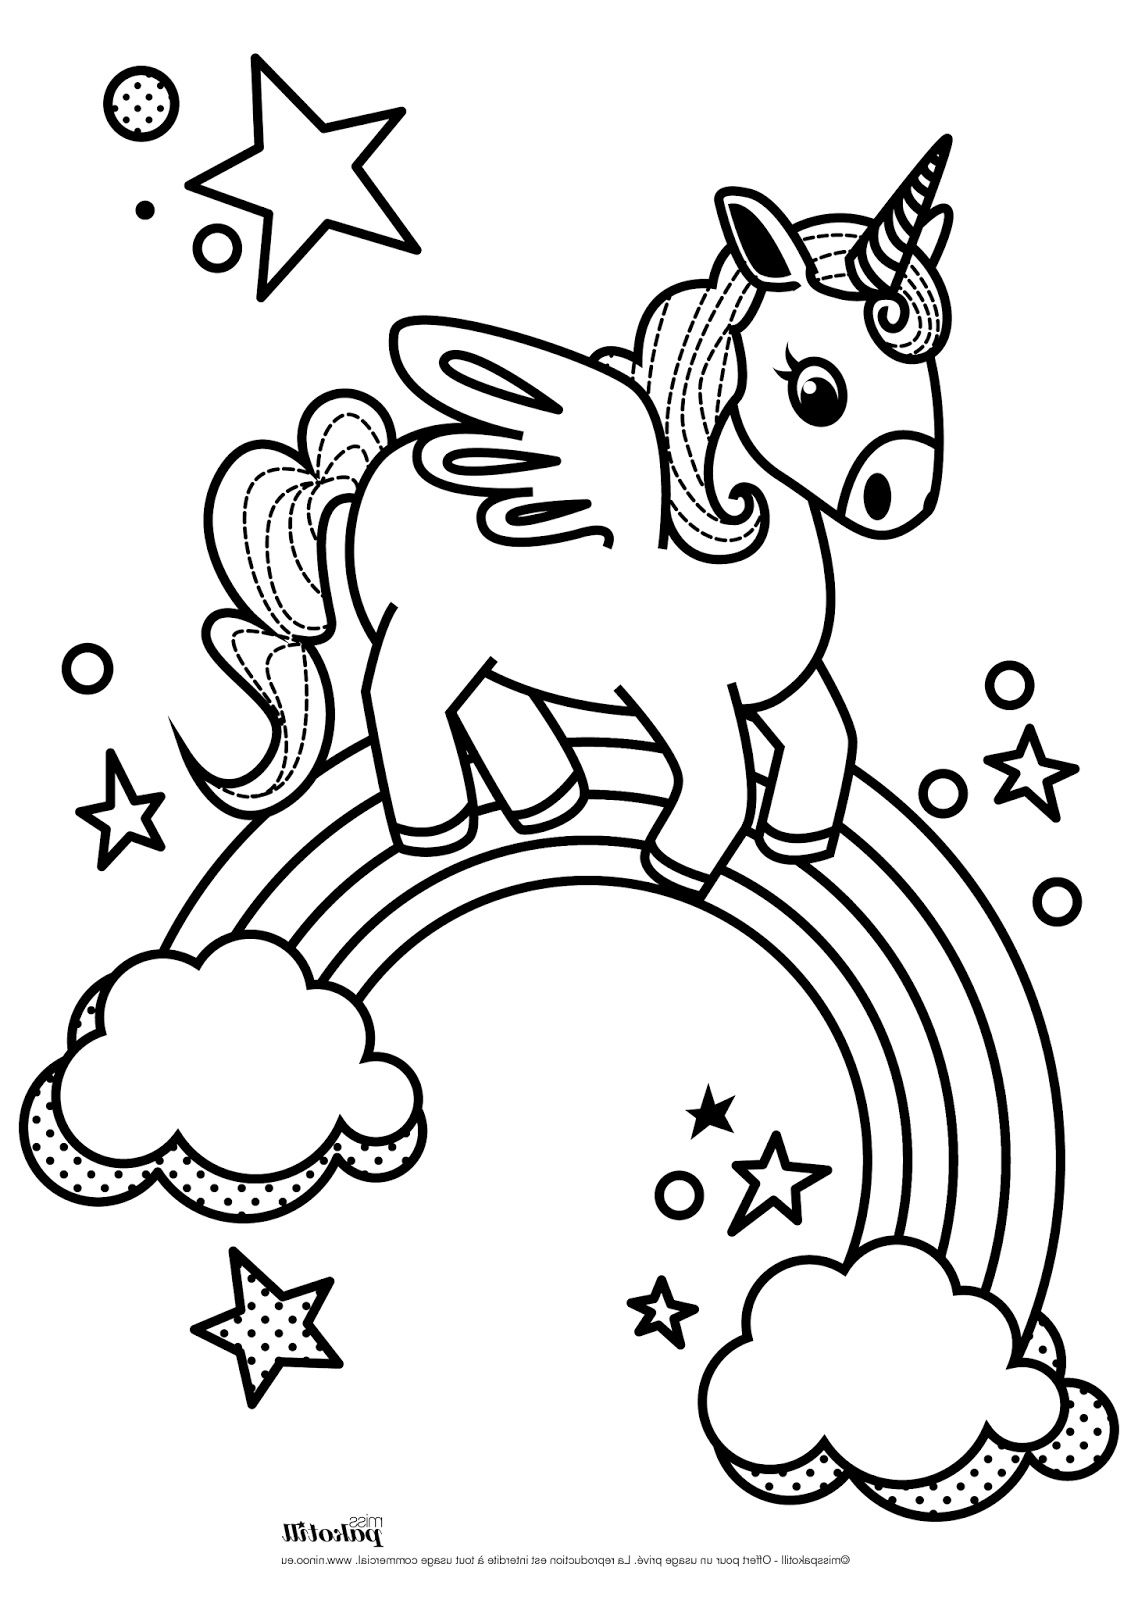 Epingle Par Anmy Borbor Sur Unicornio En 2020 Licorne Coloriage